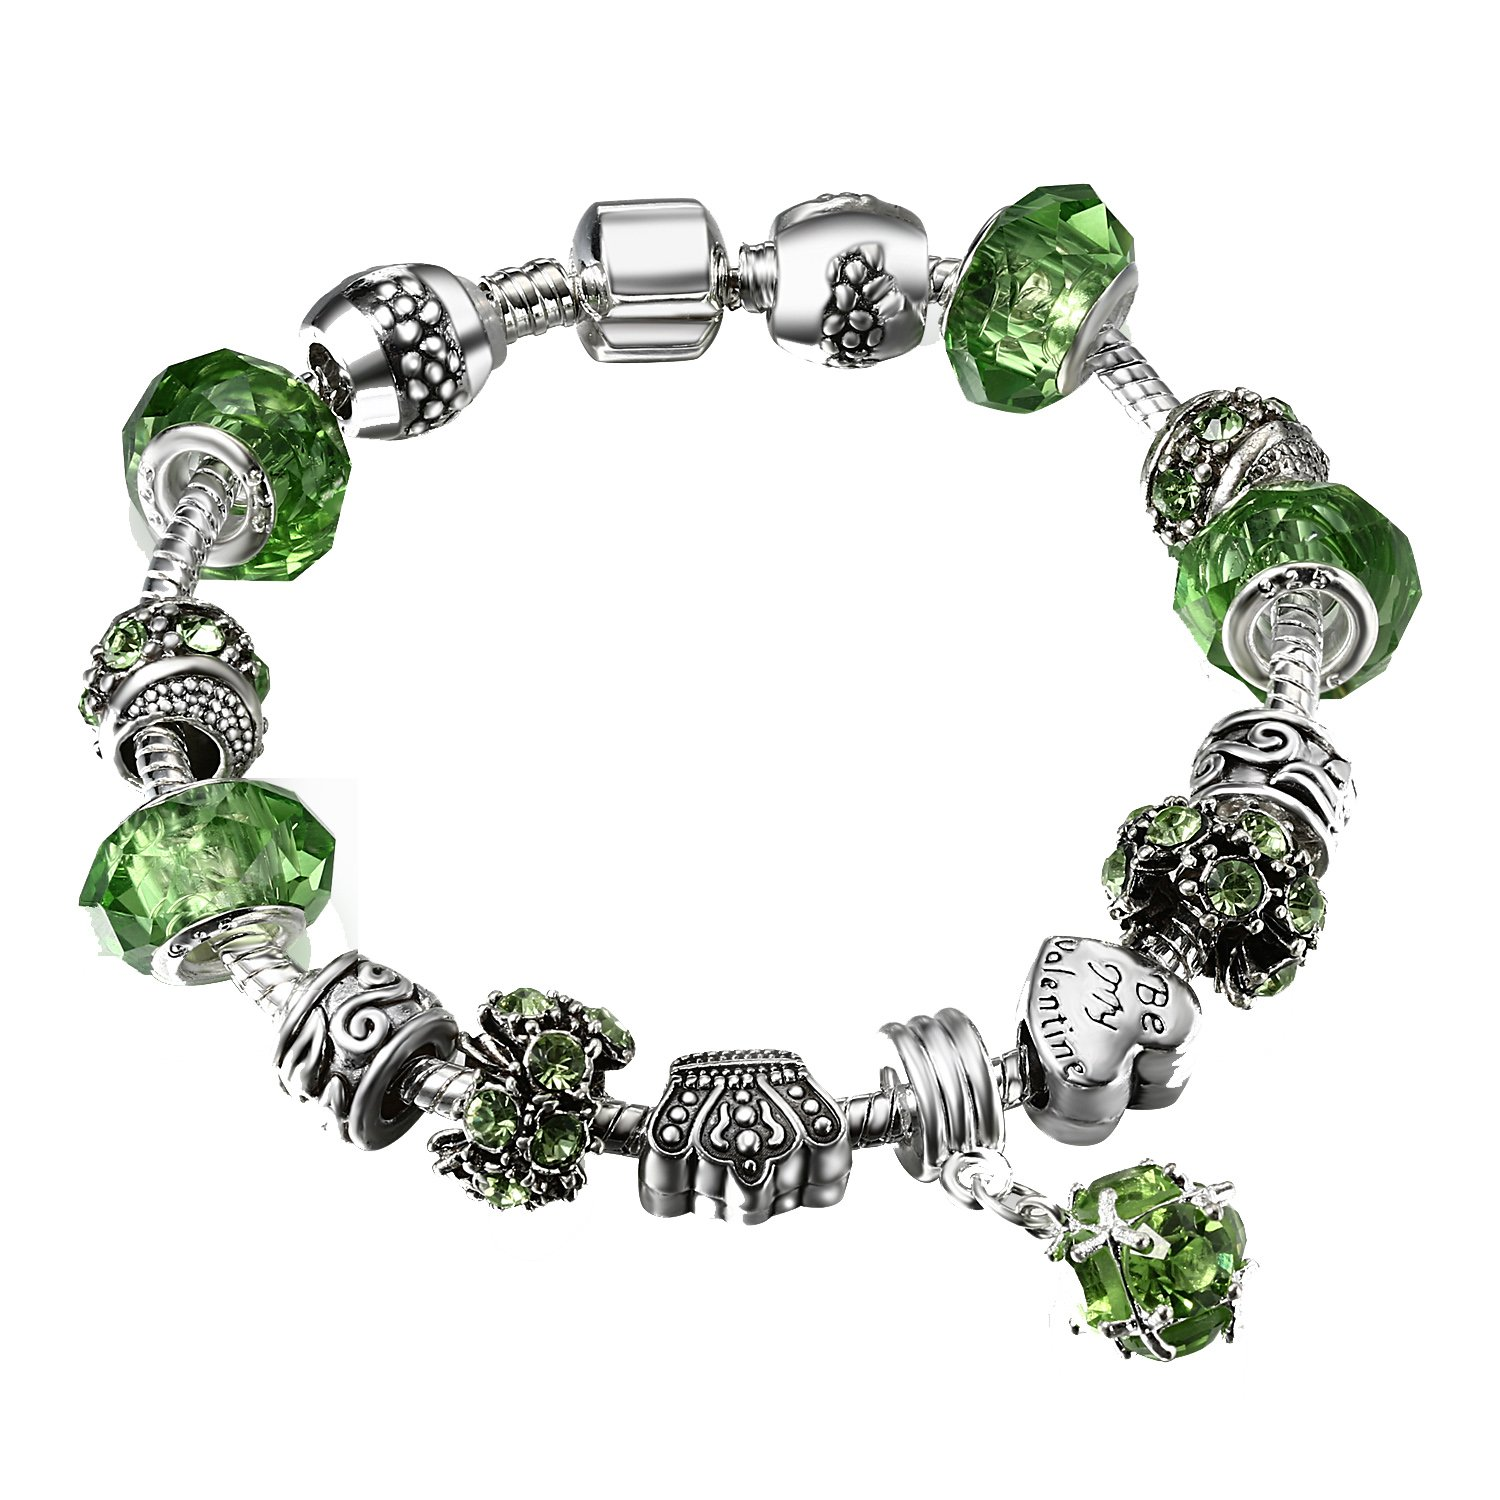 A TE Charm Bracelet Murano Glass Beads and Green Crystal St. Patrick's Day